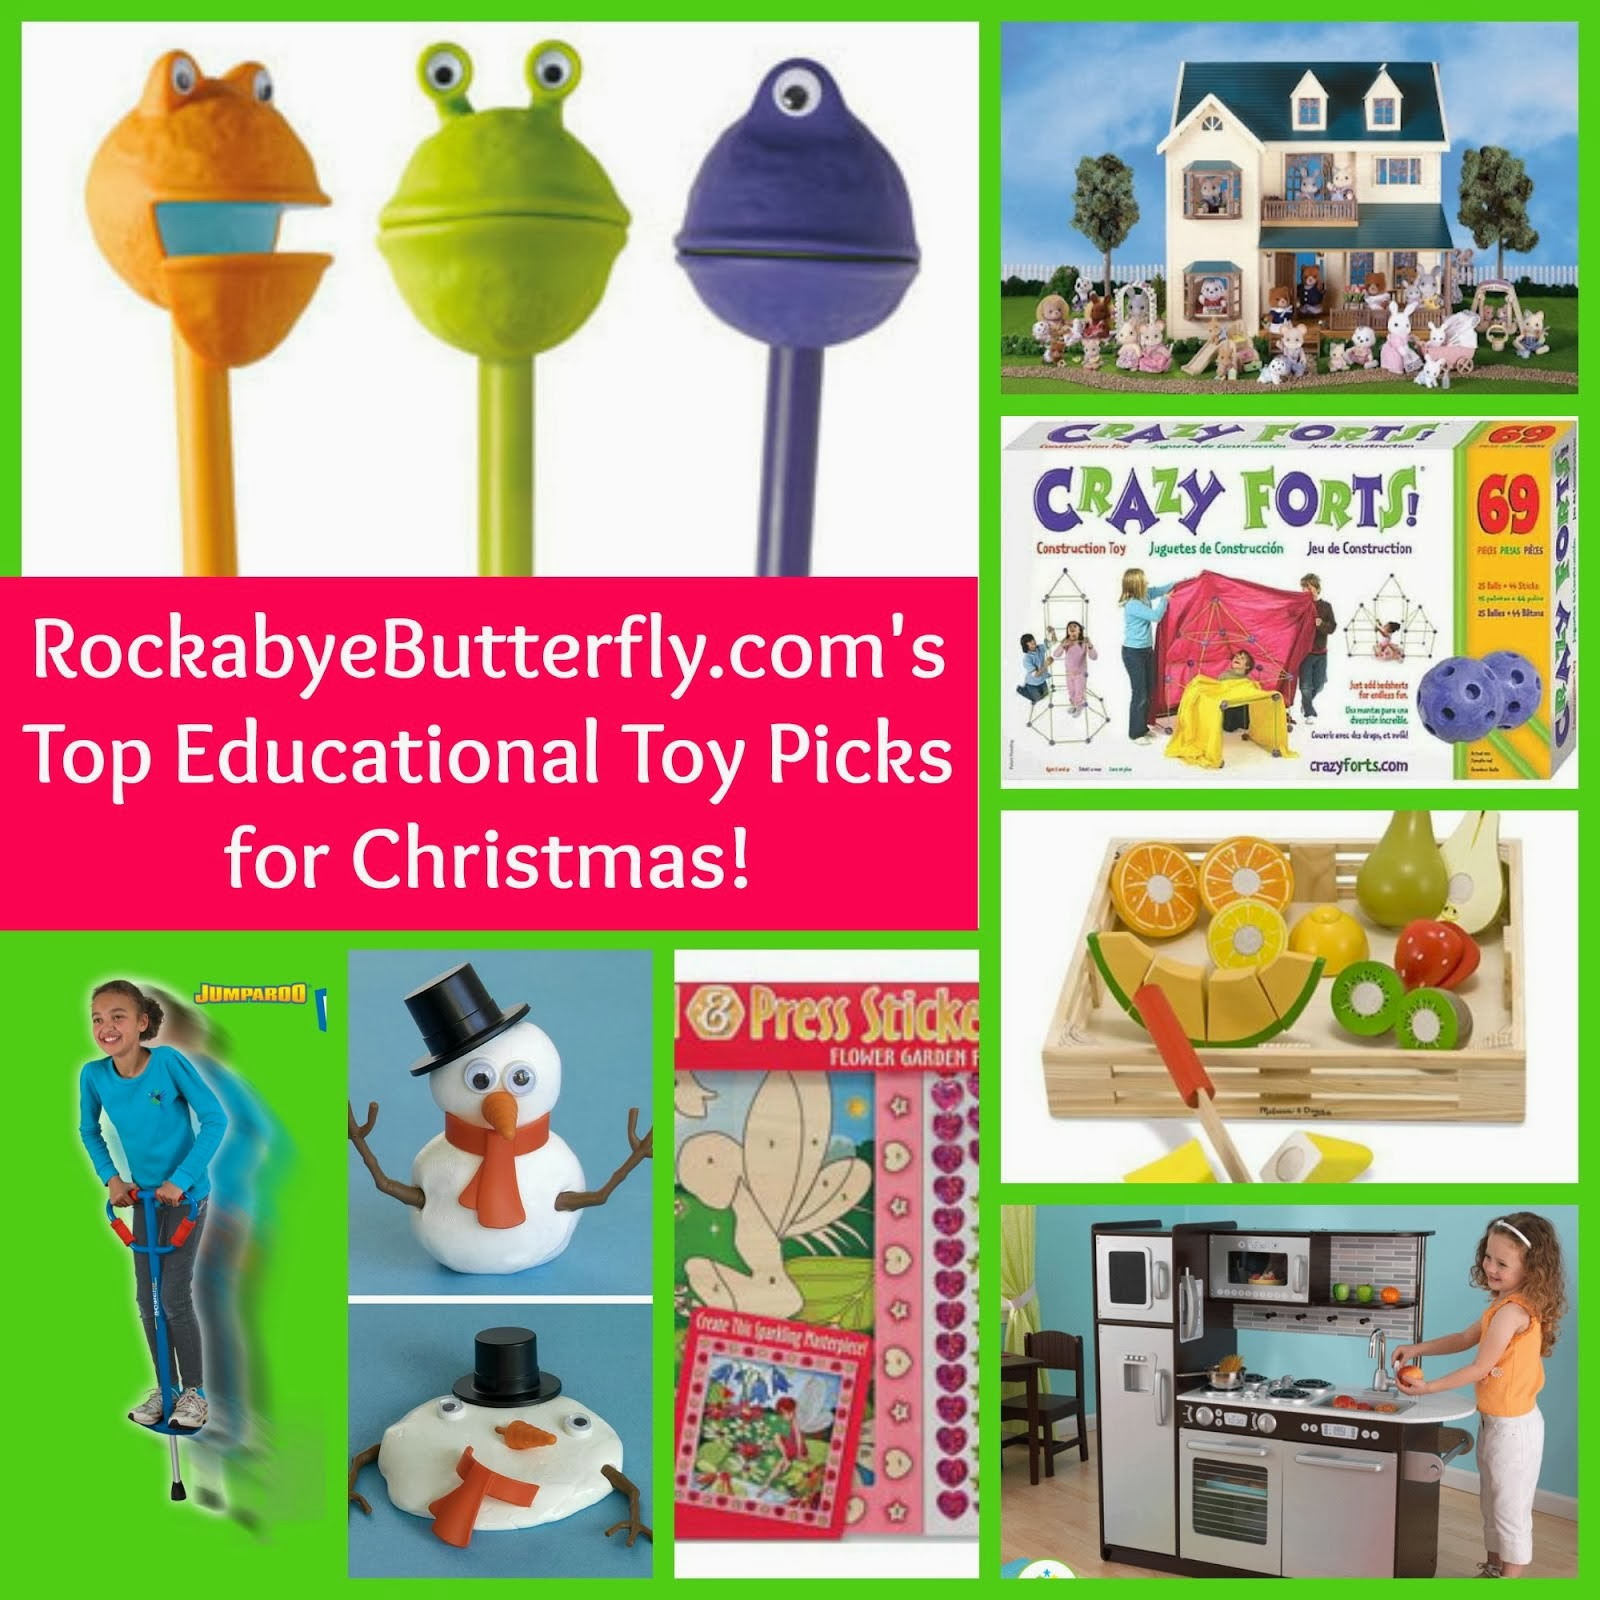 Our Top Toy Picks!